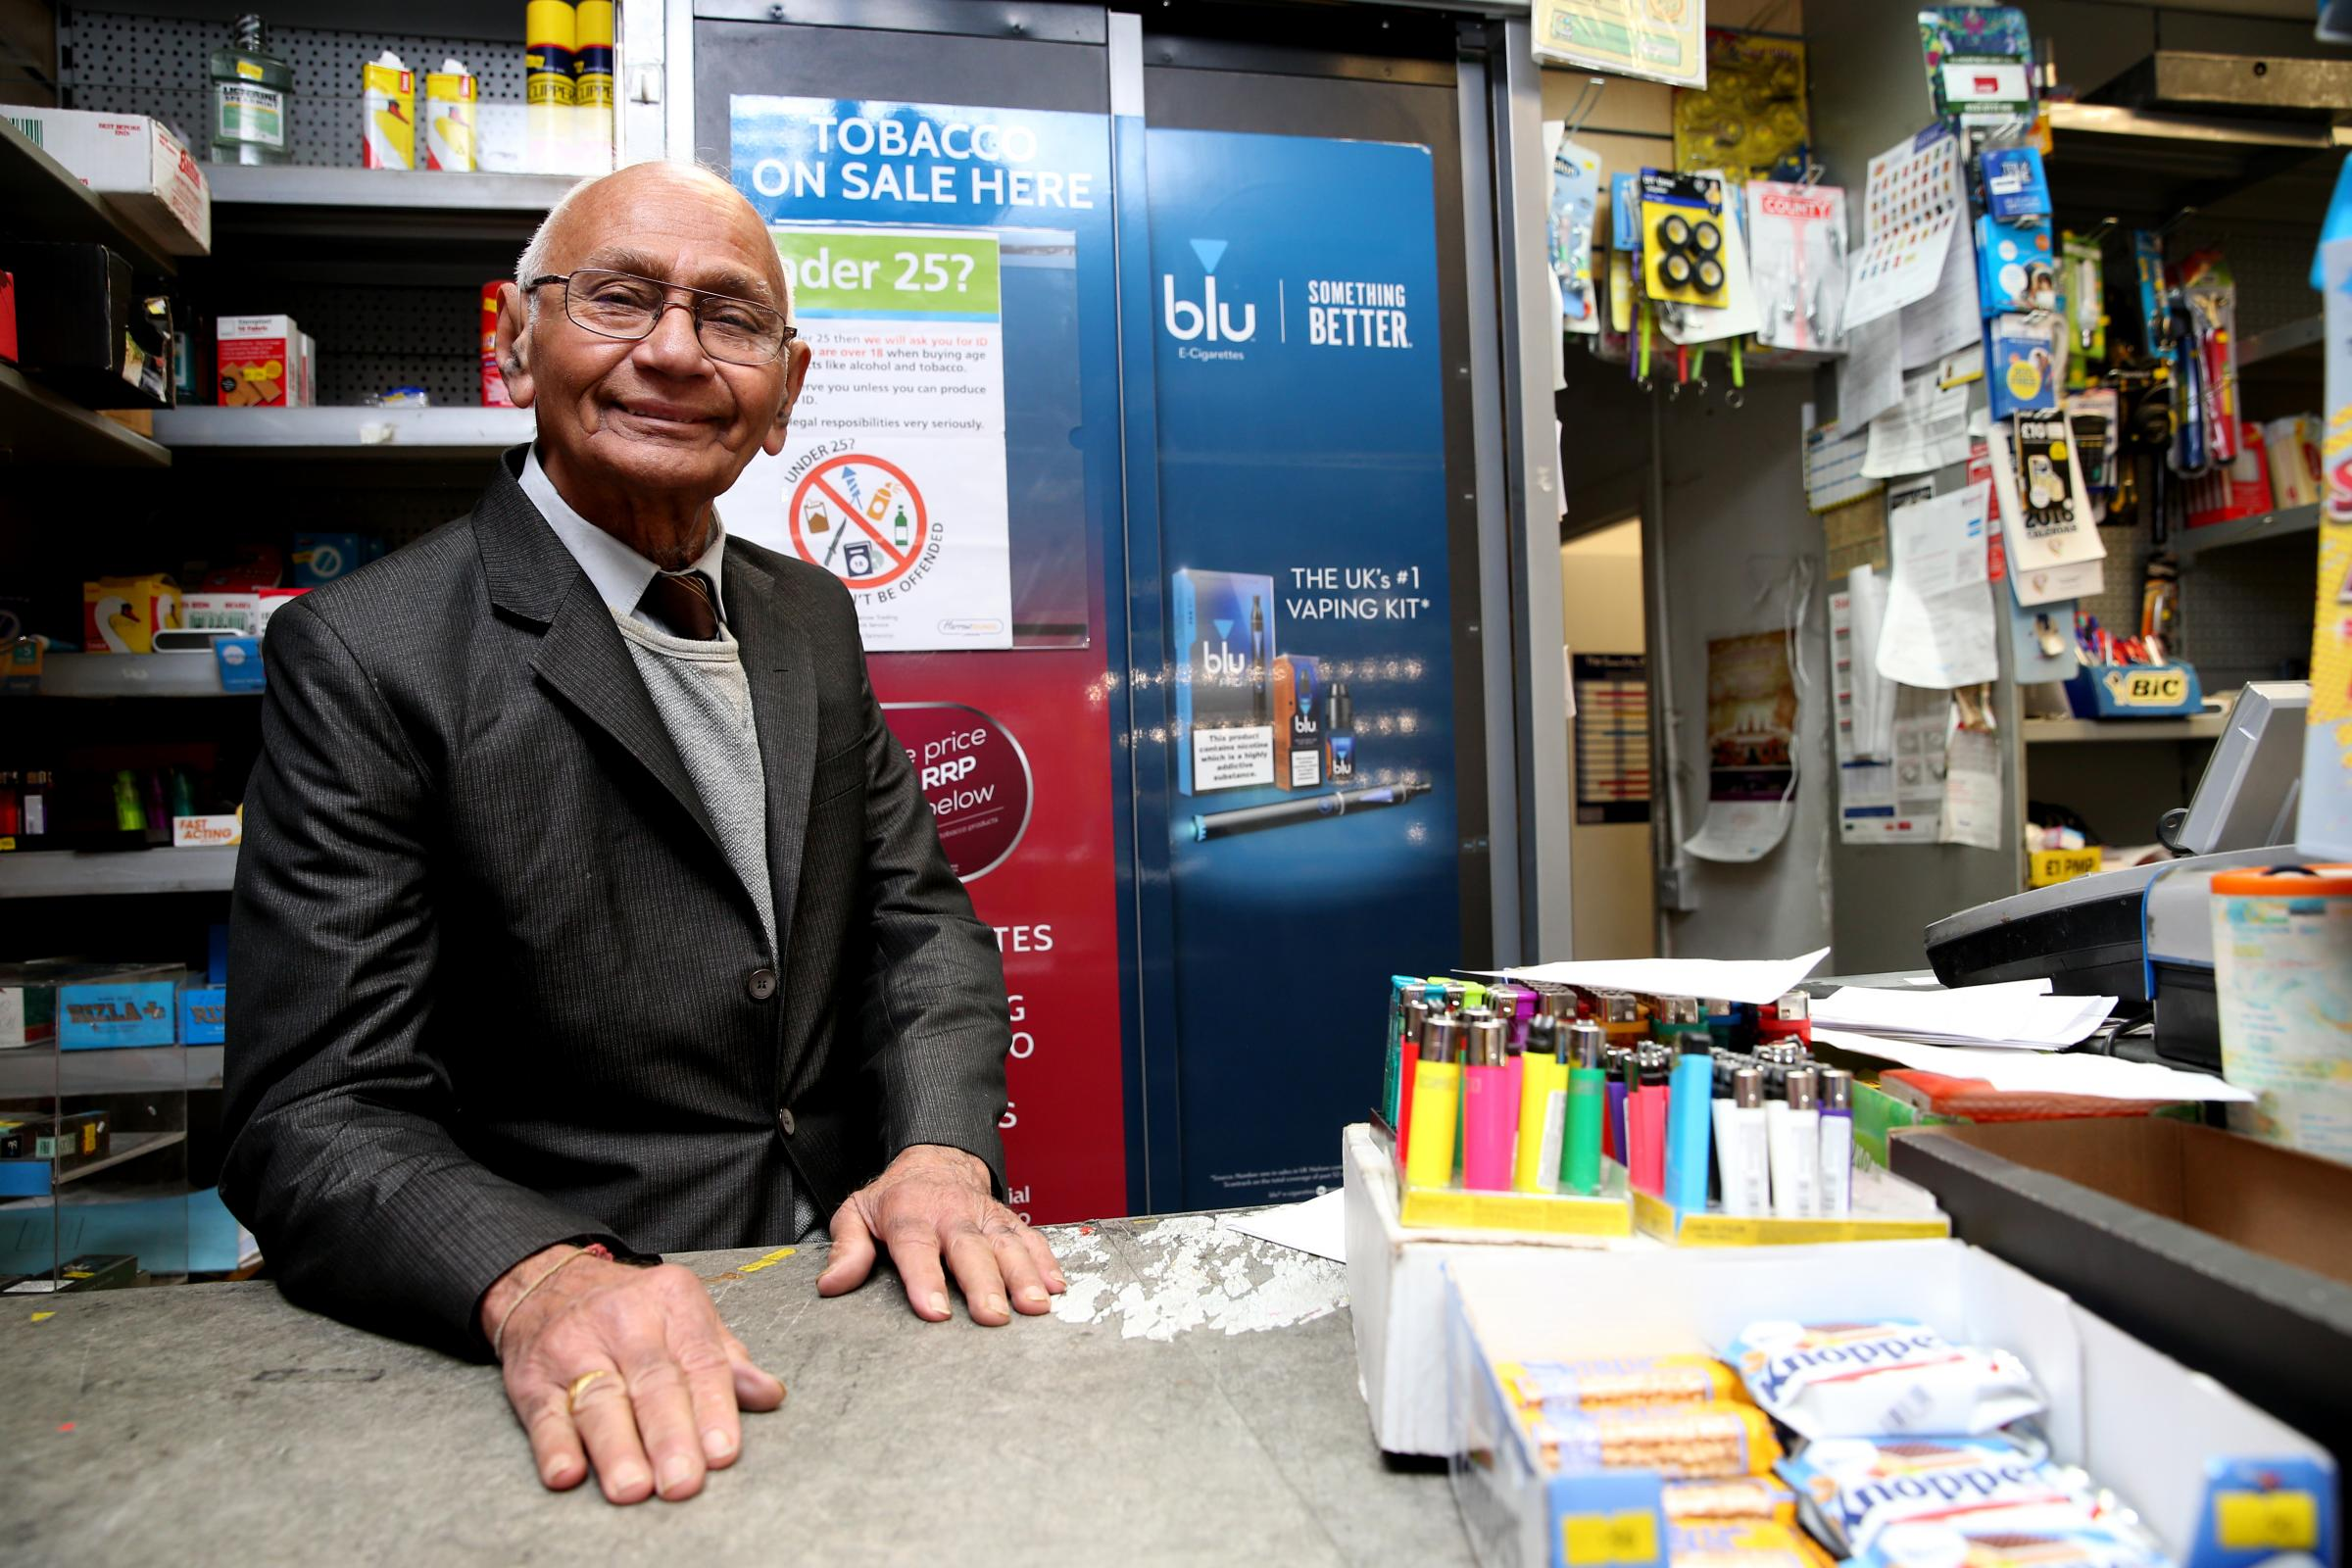 Gulab Gandhi, who is stepping down from Canons Park Newsagents after 37 years (Photo: Holly Cant)